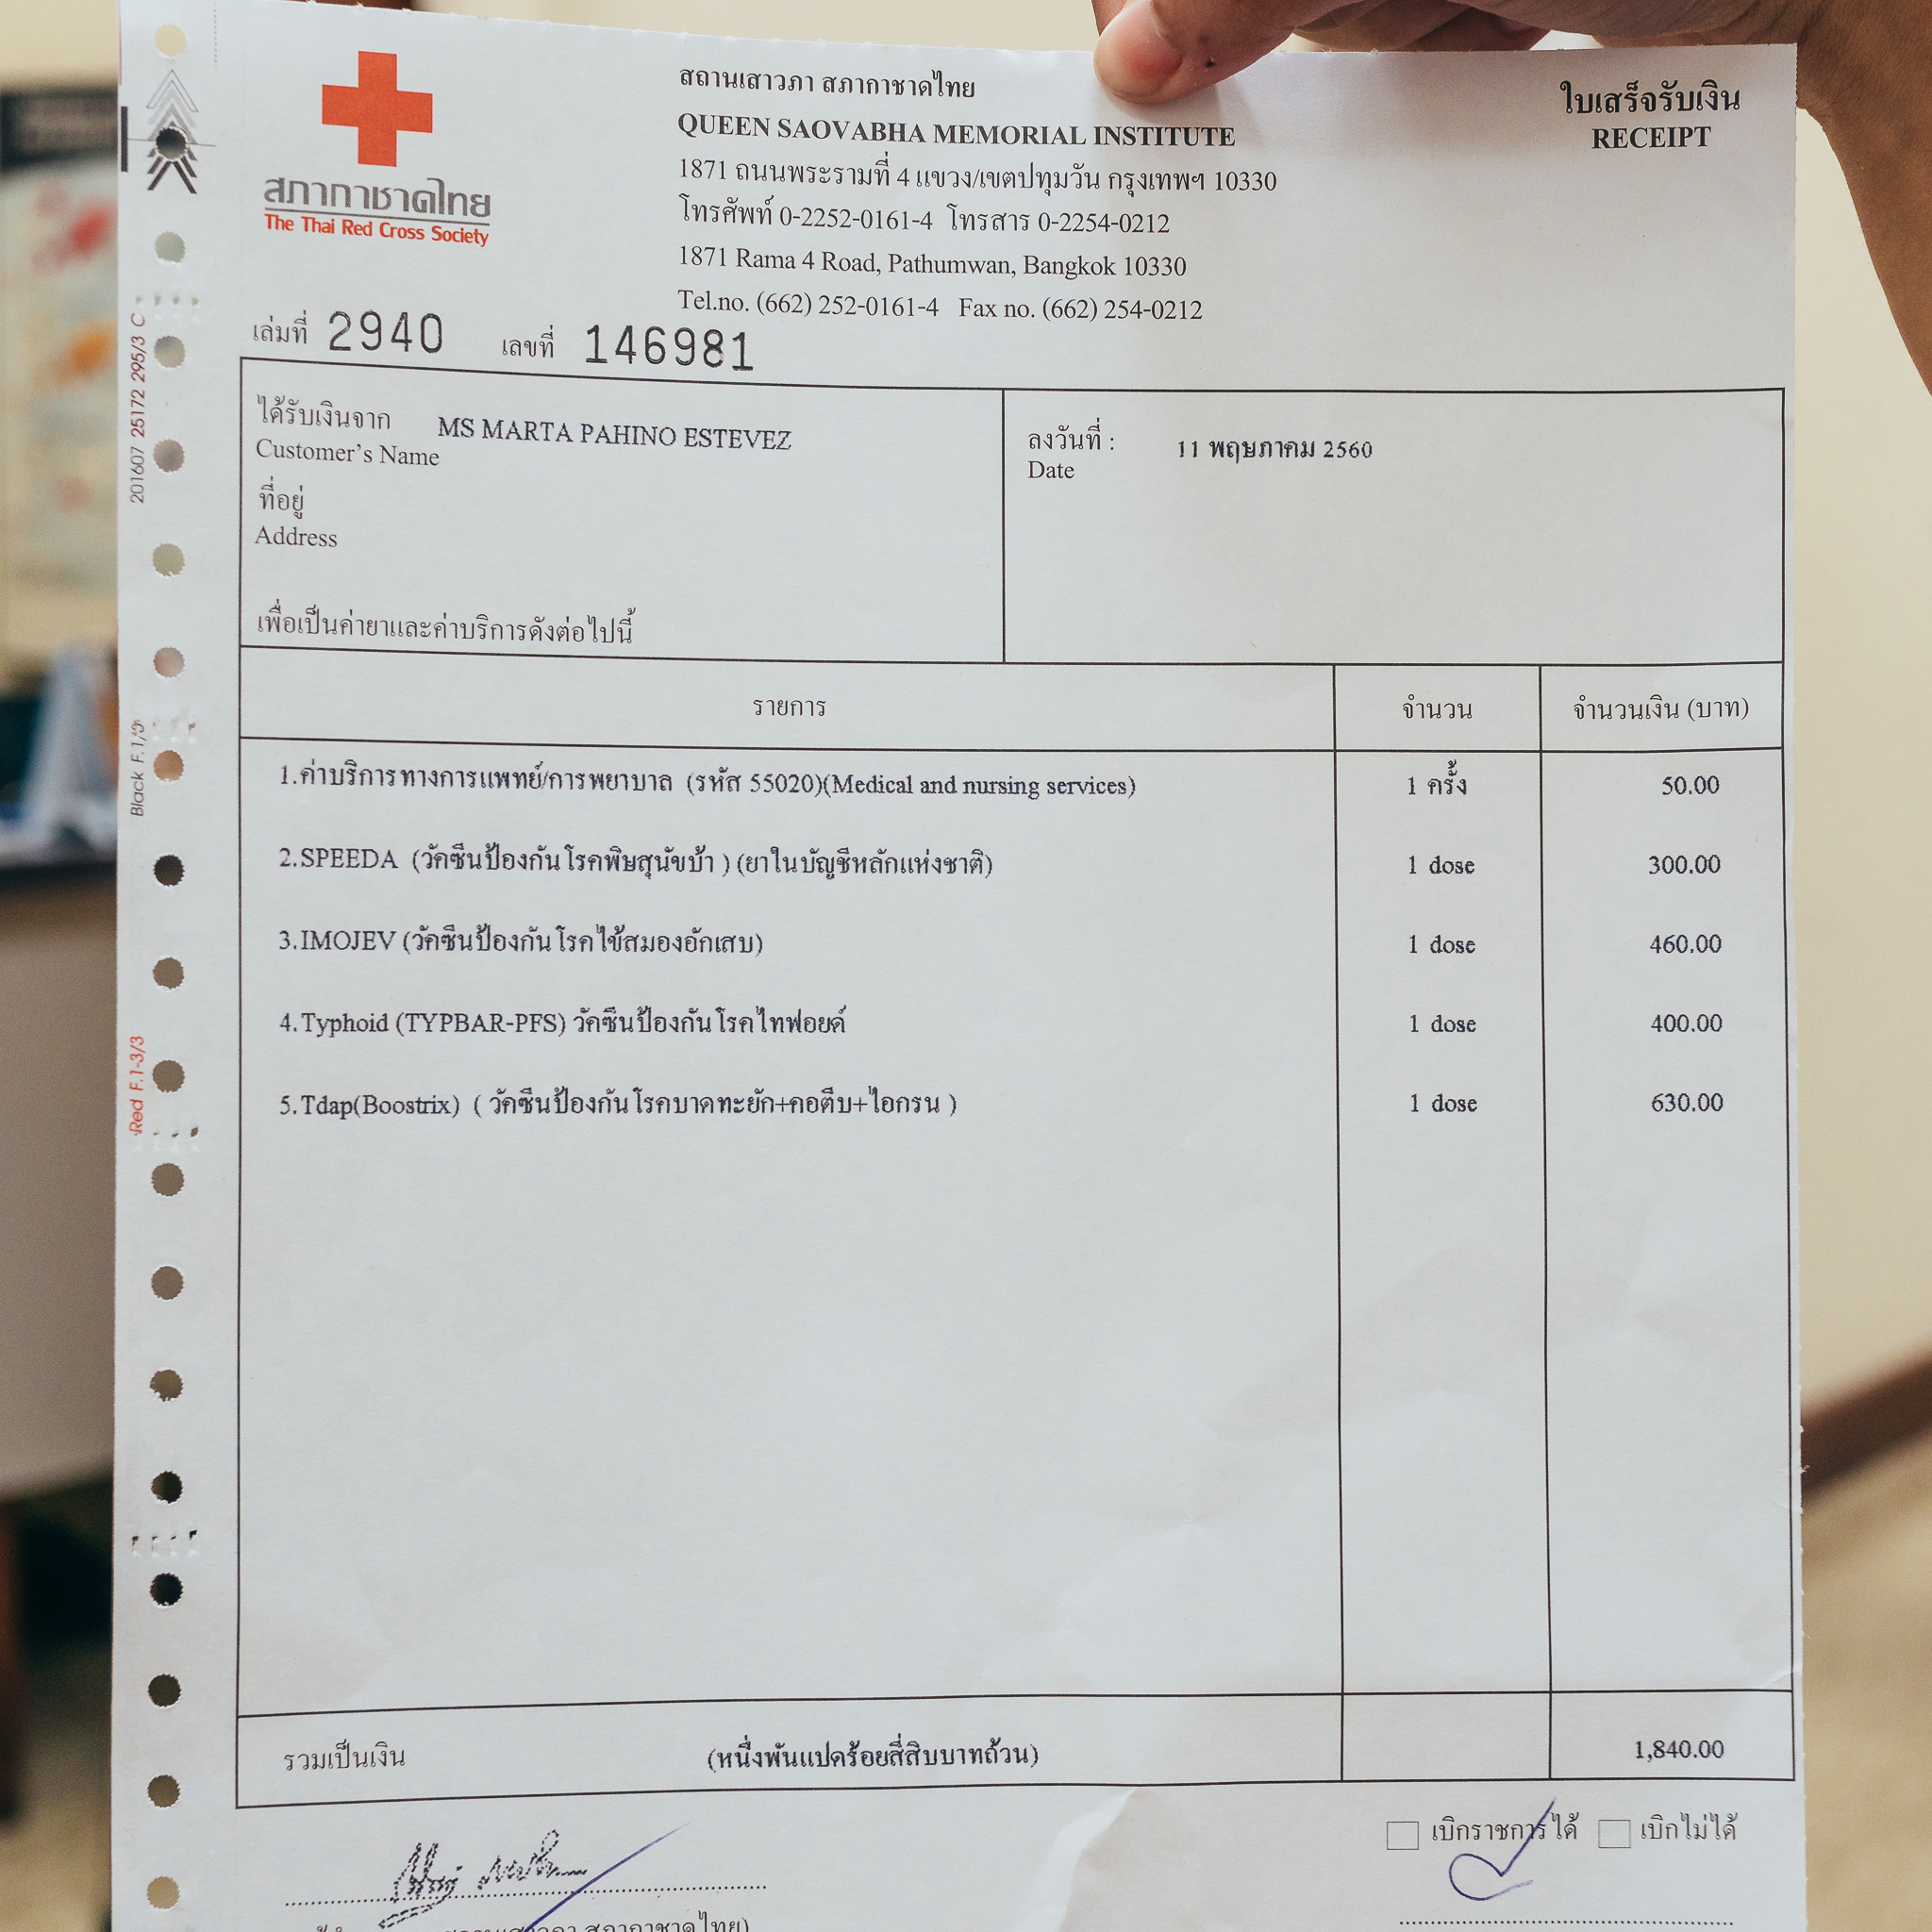 Vaccination invoice, currency in BAHT